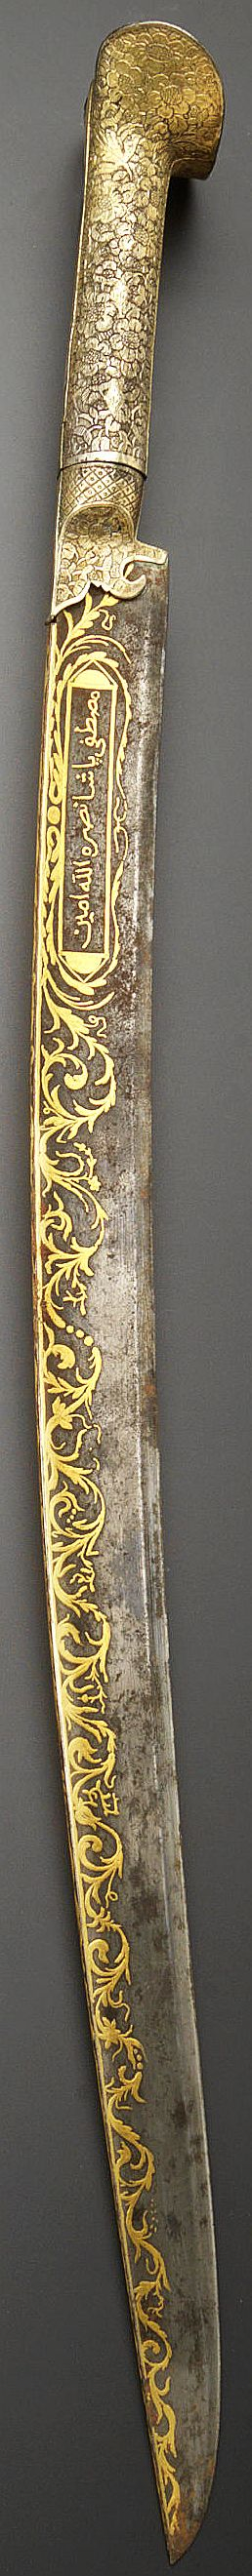 Ottoman yataghan / yatagan, circa 1800, slightly curving blade and tapering point, the spine and sides decorated with bands of gold overlay consisting of undulating leafy and floral vines, one side with an inscription-filled cartouche,  76 cm. long. The inscriptions comprise: mustapha pasha nasarahu allal amin, 'Mustapha Pasha may Gold help him, Amen!'.